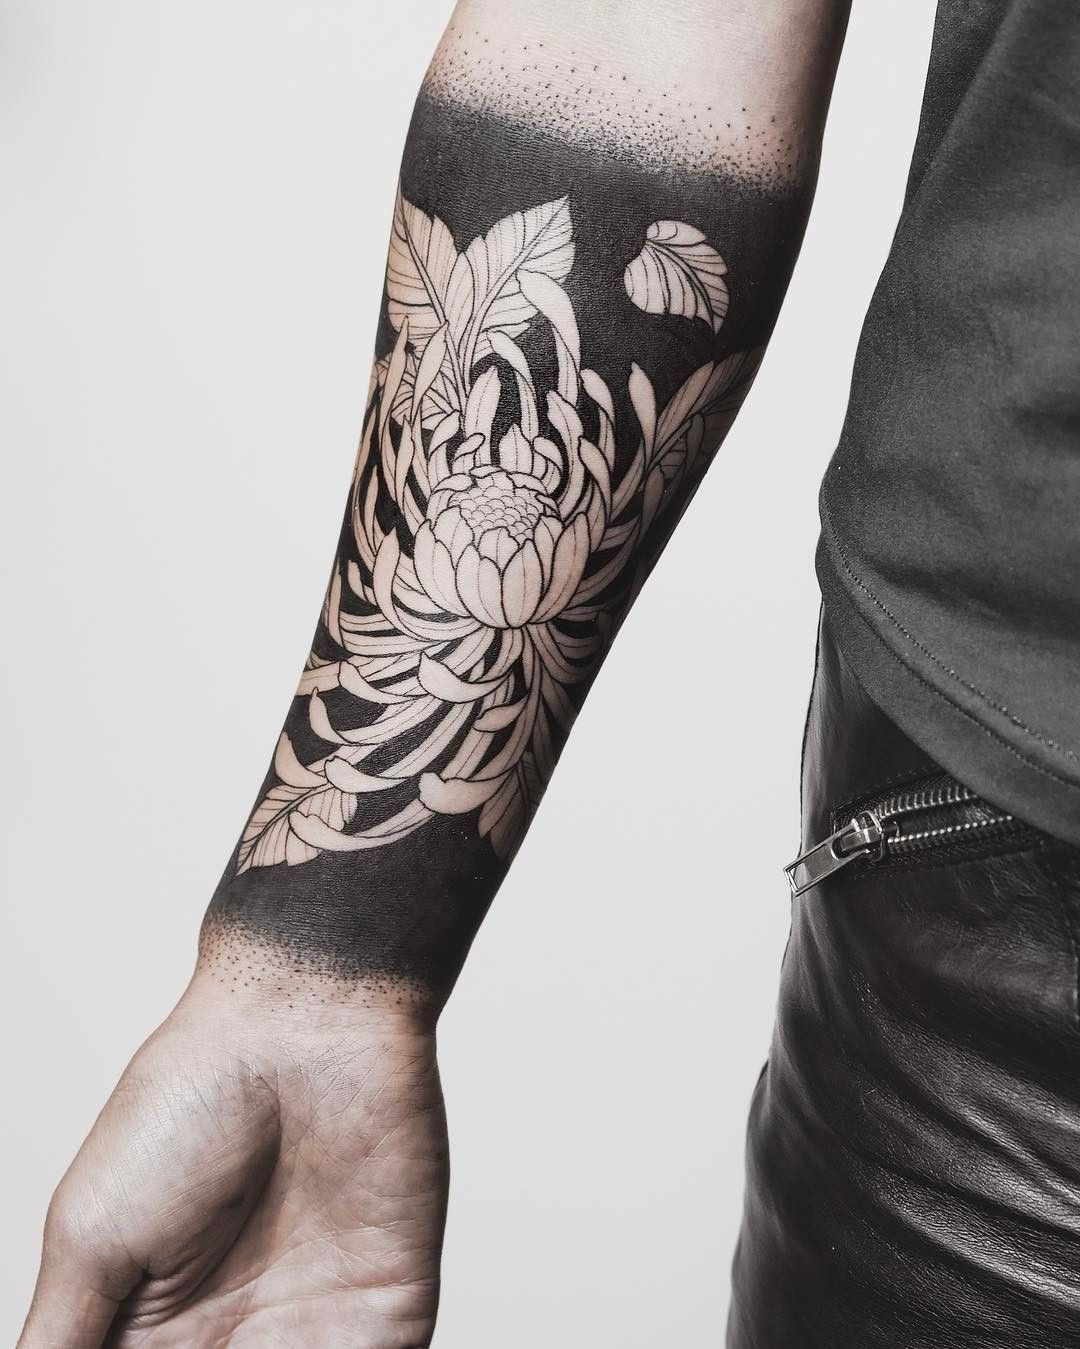 Heavy Blackwork Background Sleeve Tattoos Arm Band Tattoo Chrysanthemum Tattoo